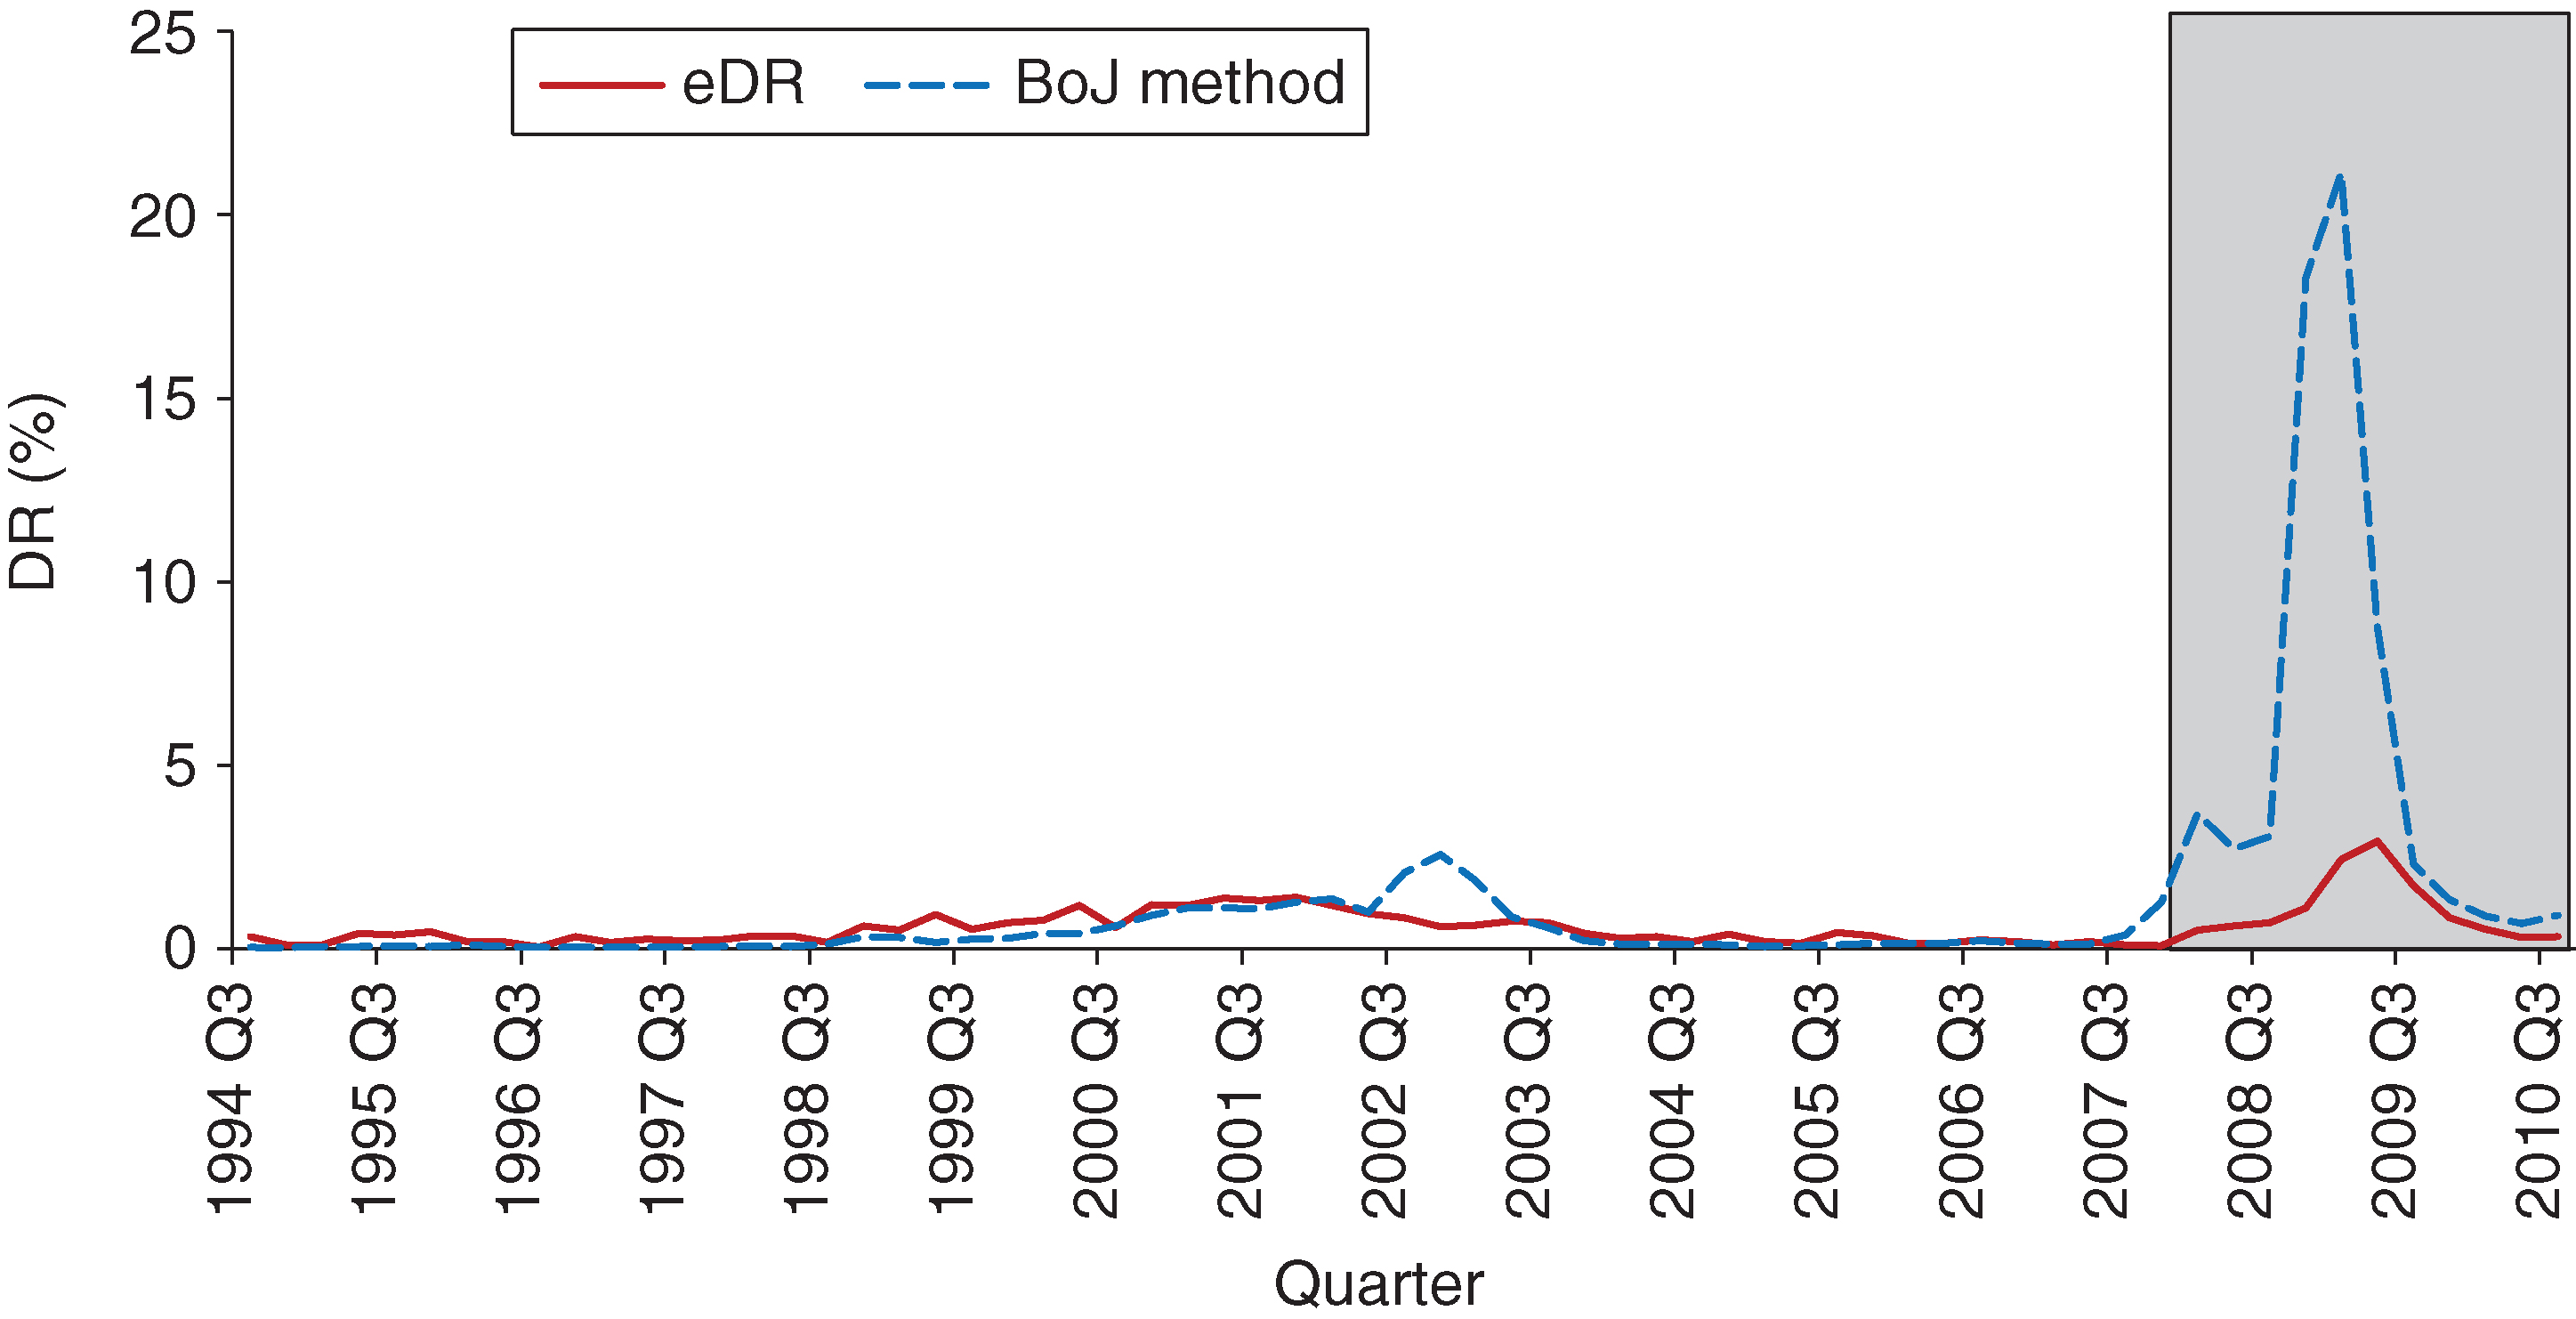 In-sample and out-of-sample model fit (Bank of Japan method).